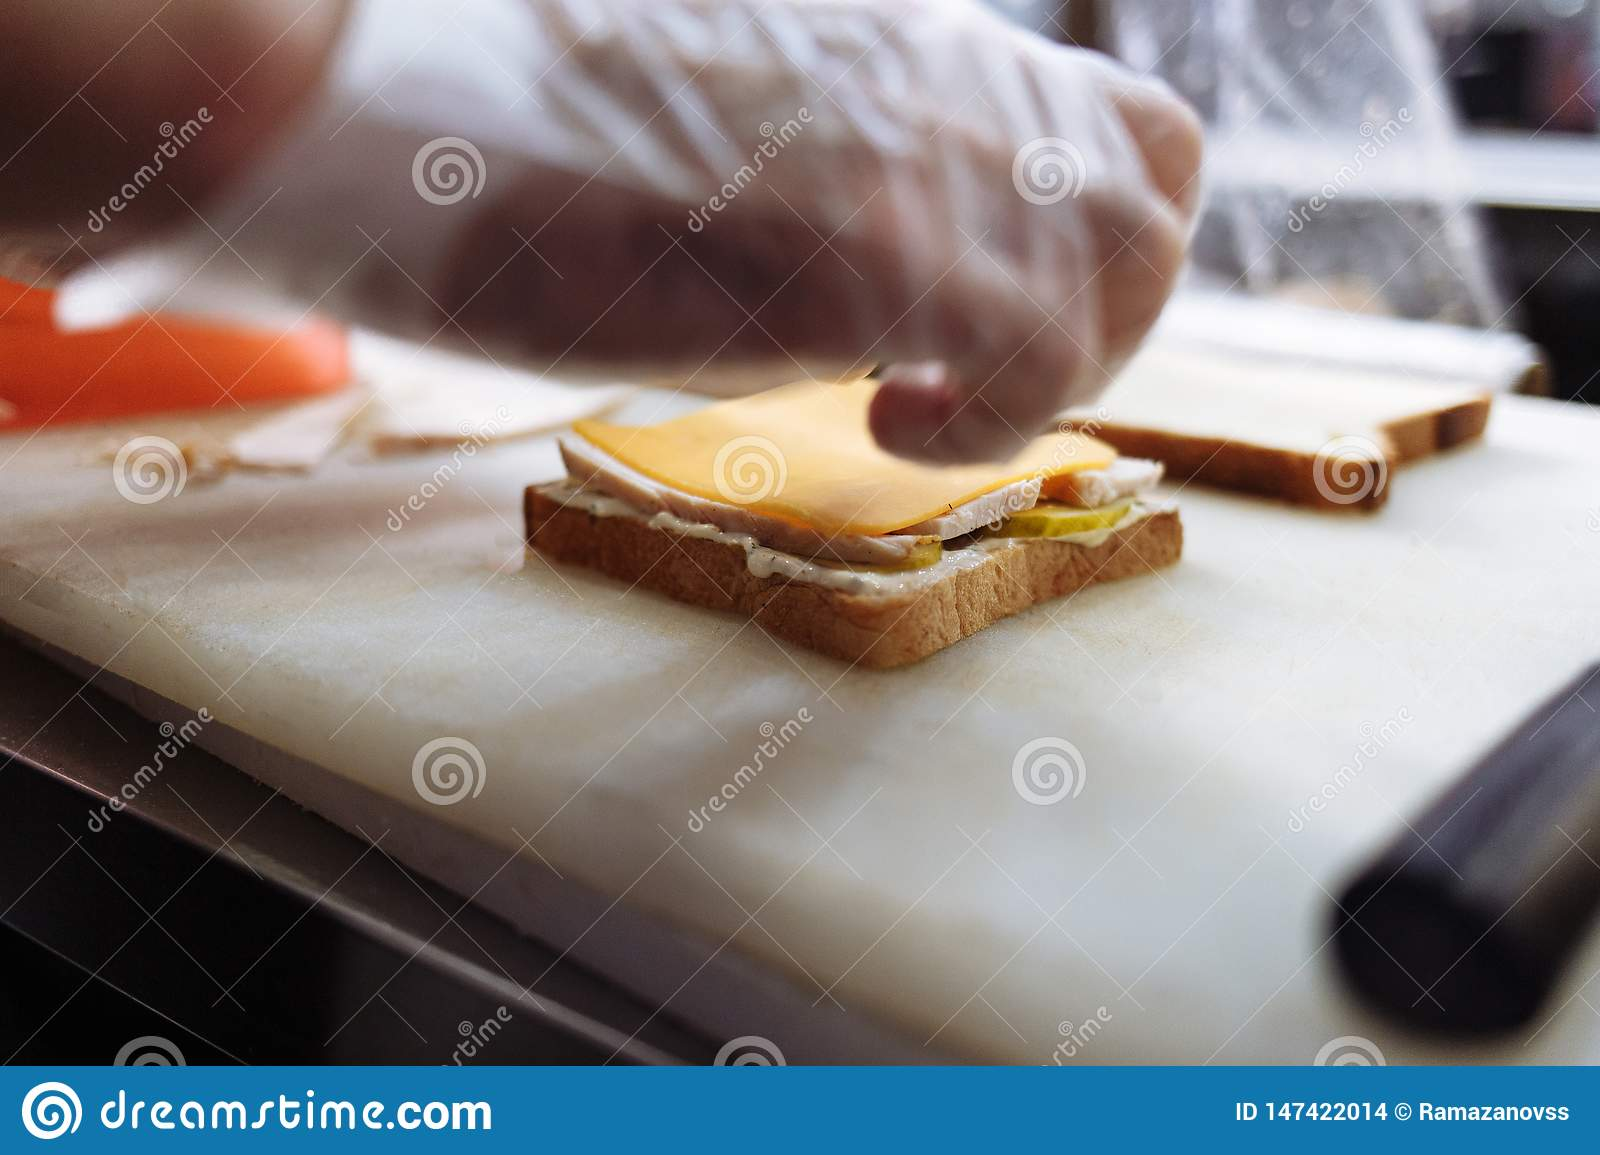 Cook in polyethylene gloves making a sandwich on a white board